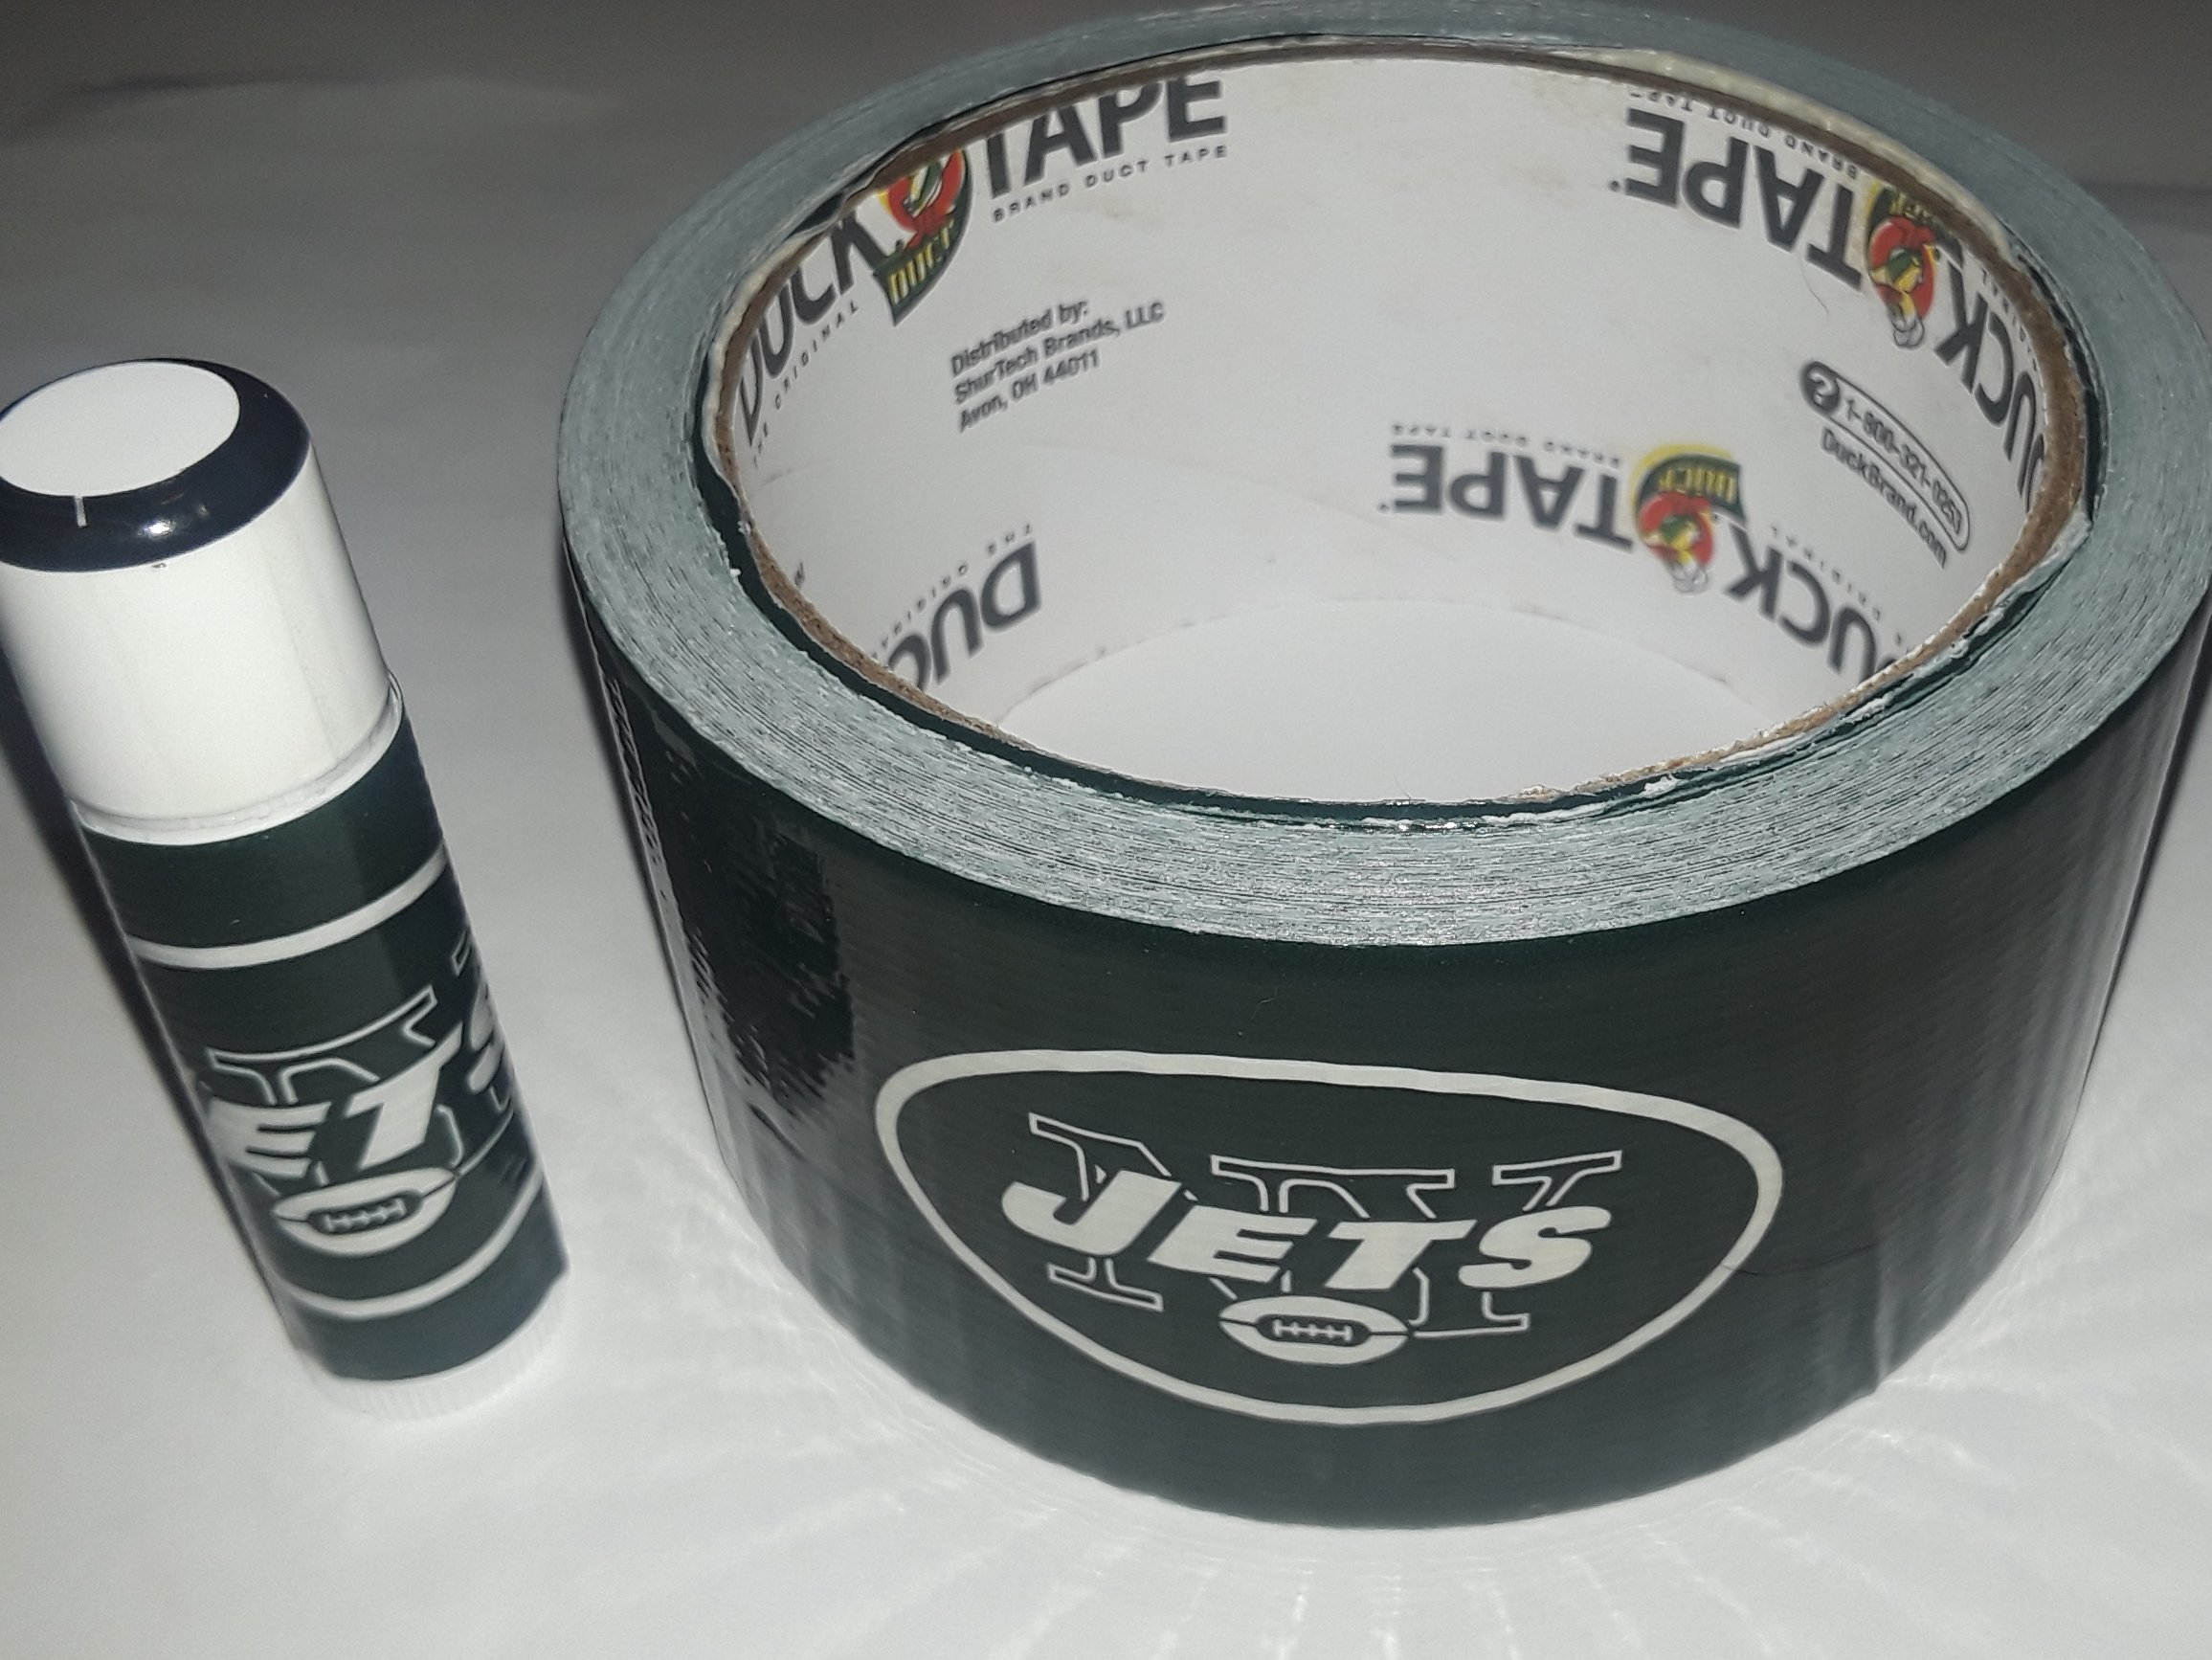 5 New York Jets NFL Chap Stick Lip Balm five pack pieces BULK Superbowl LII 52 by In a Sticky Situation